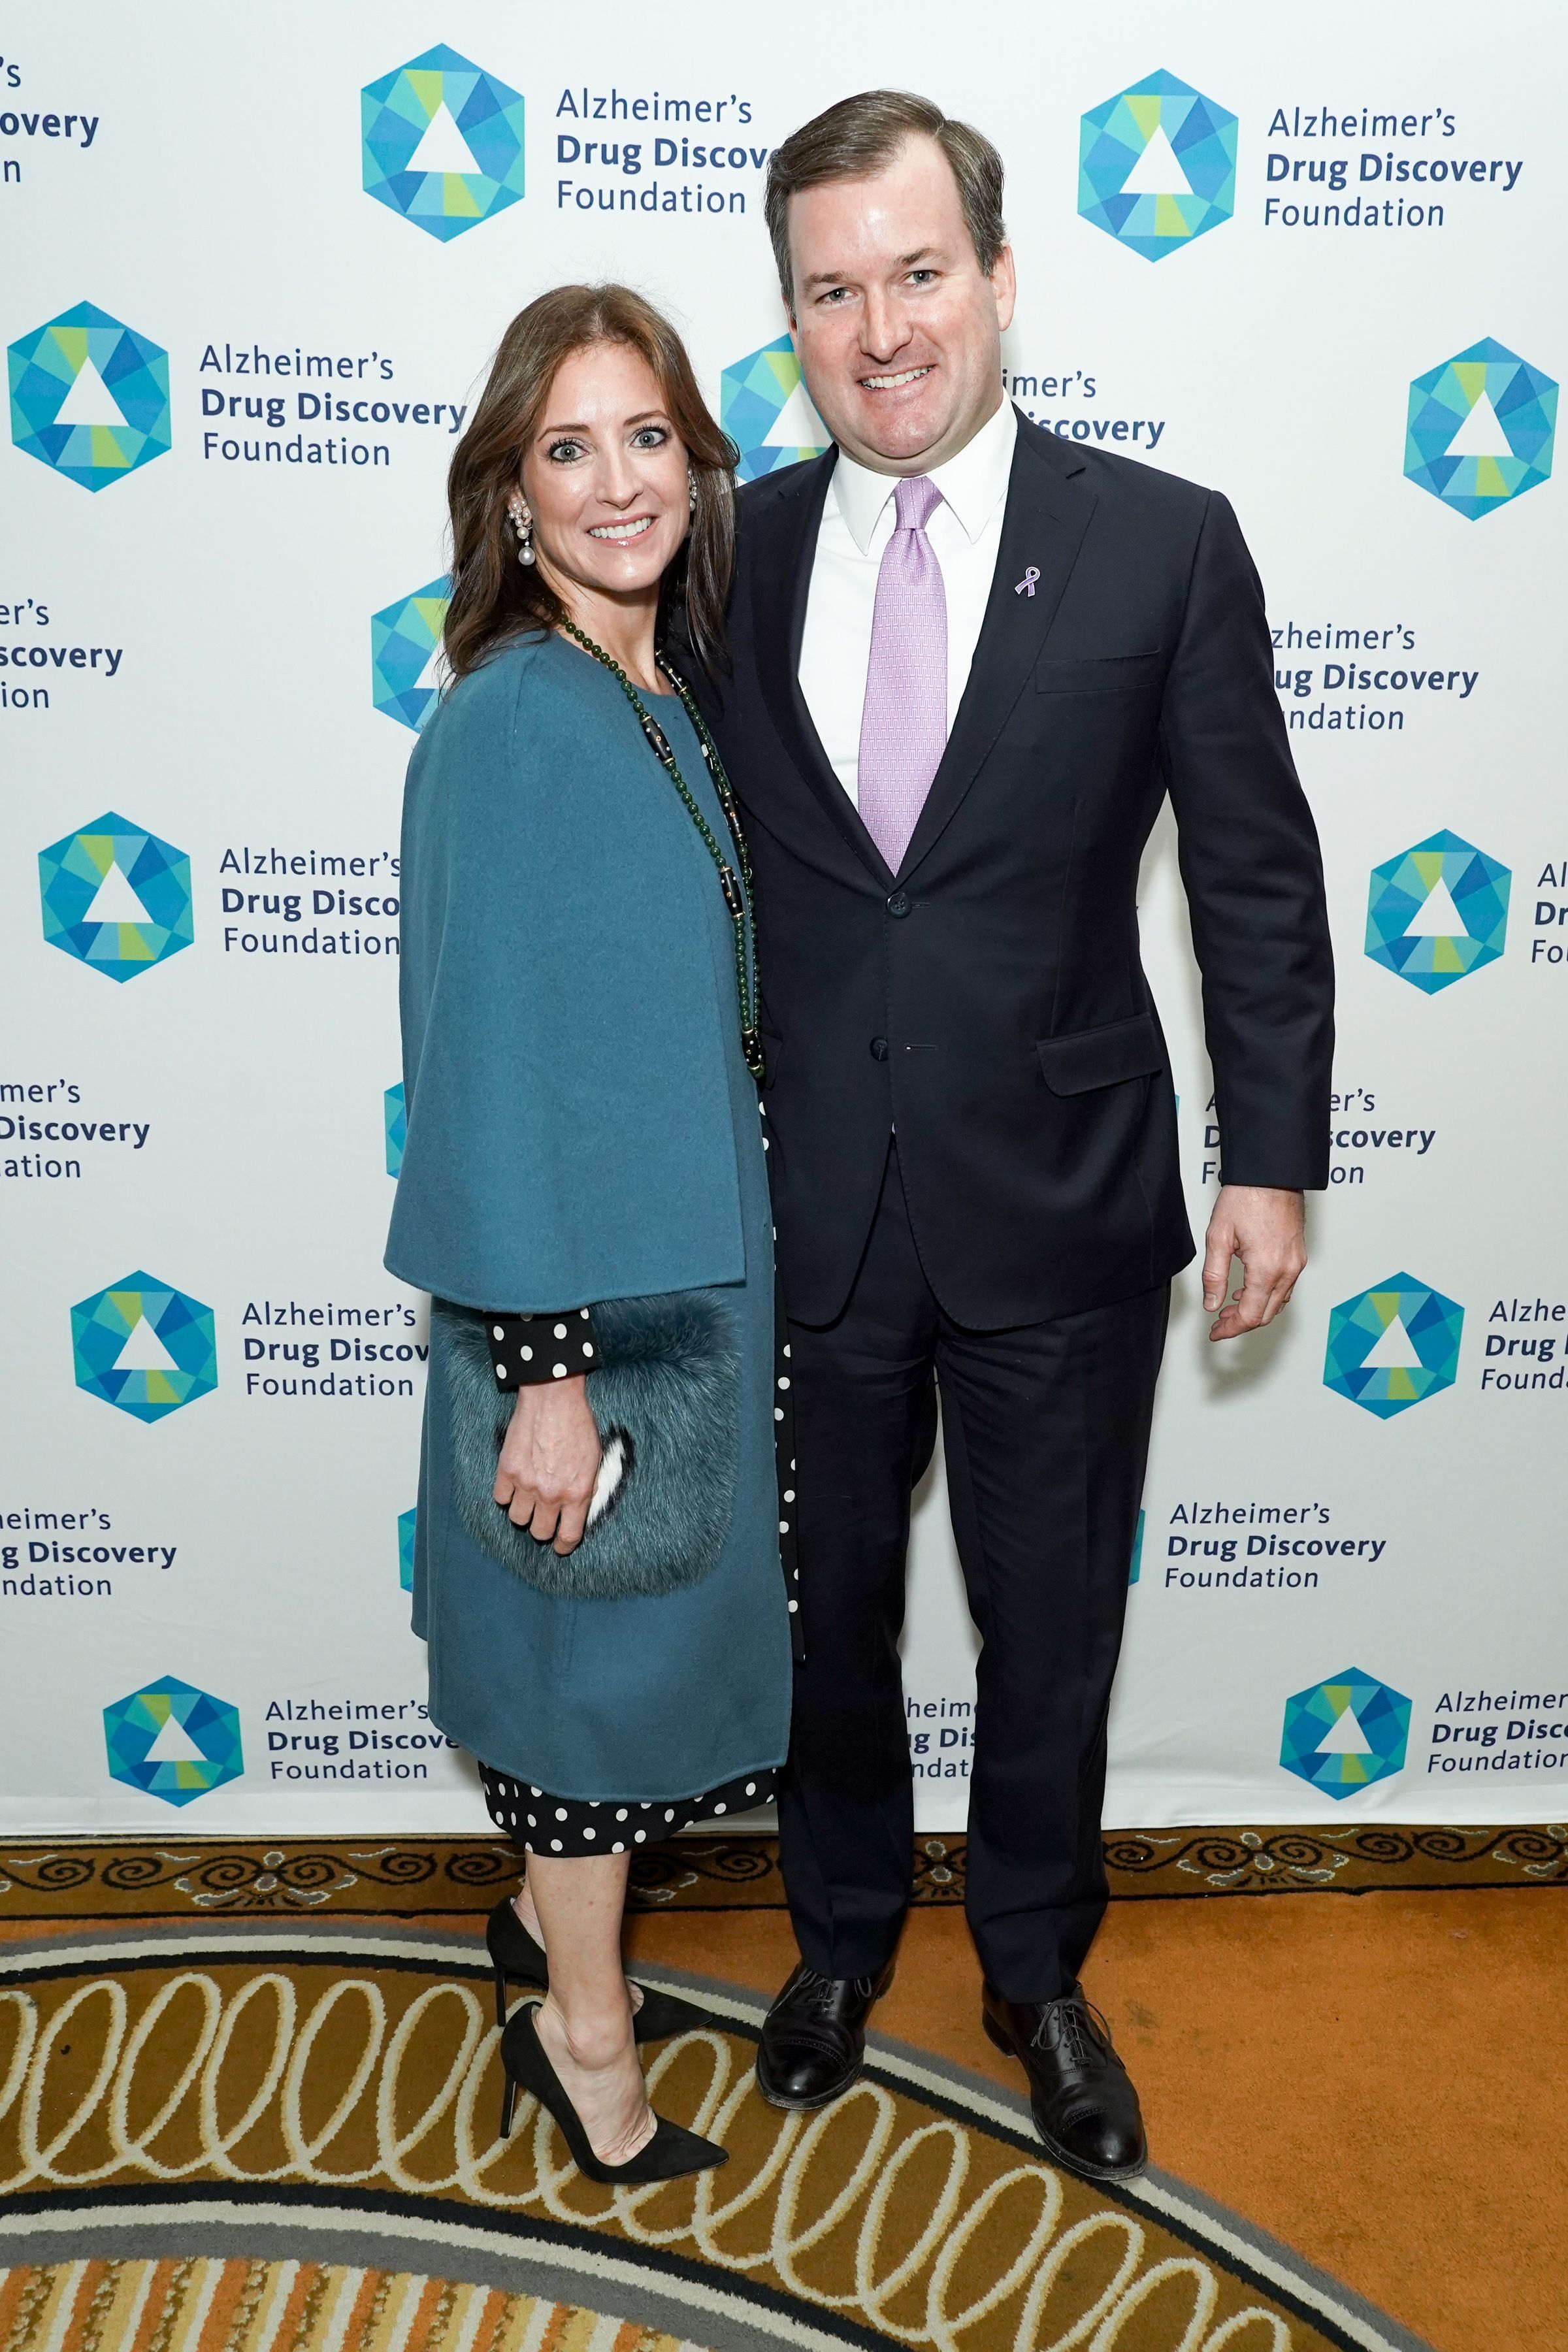 Inside the 10th Annual Alzheimer's Drug Discovery Foundation Luncheon